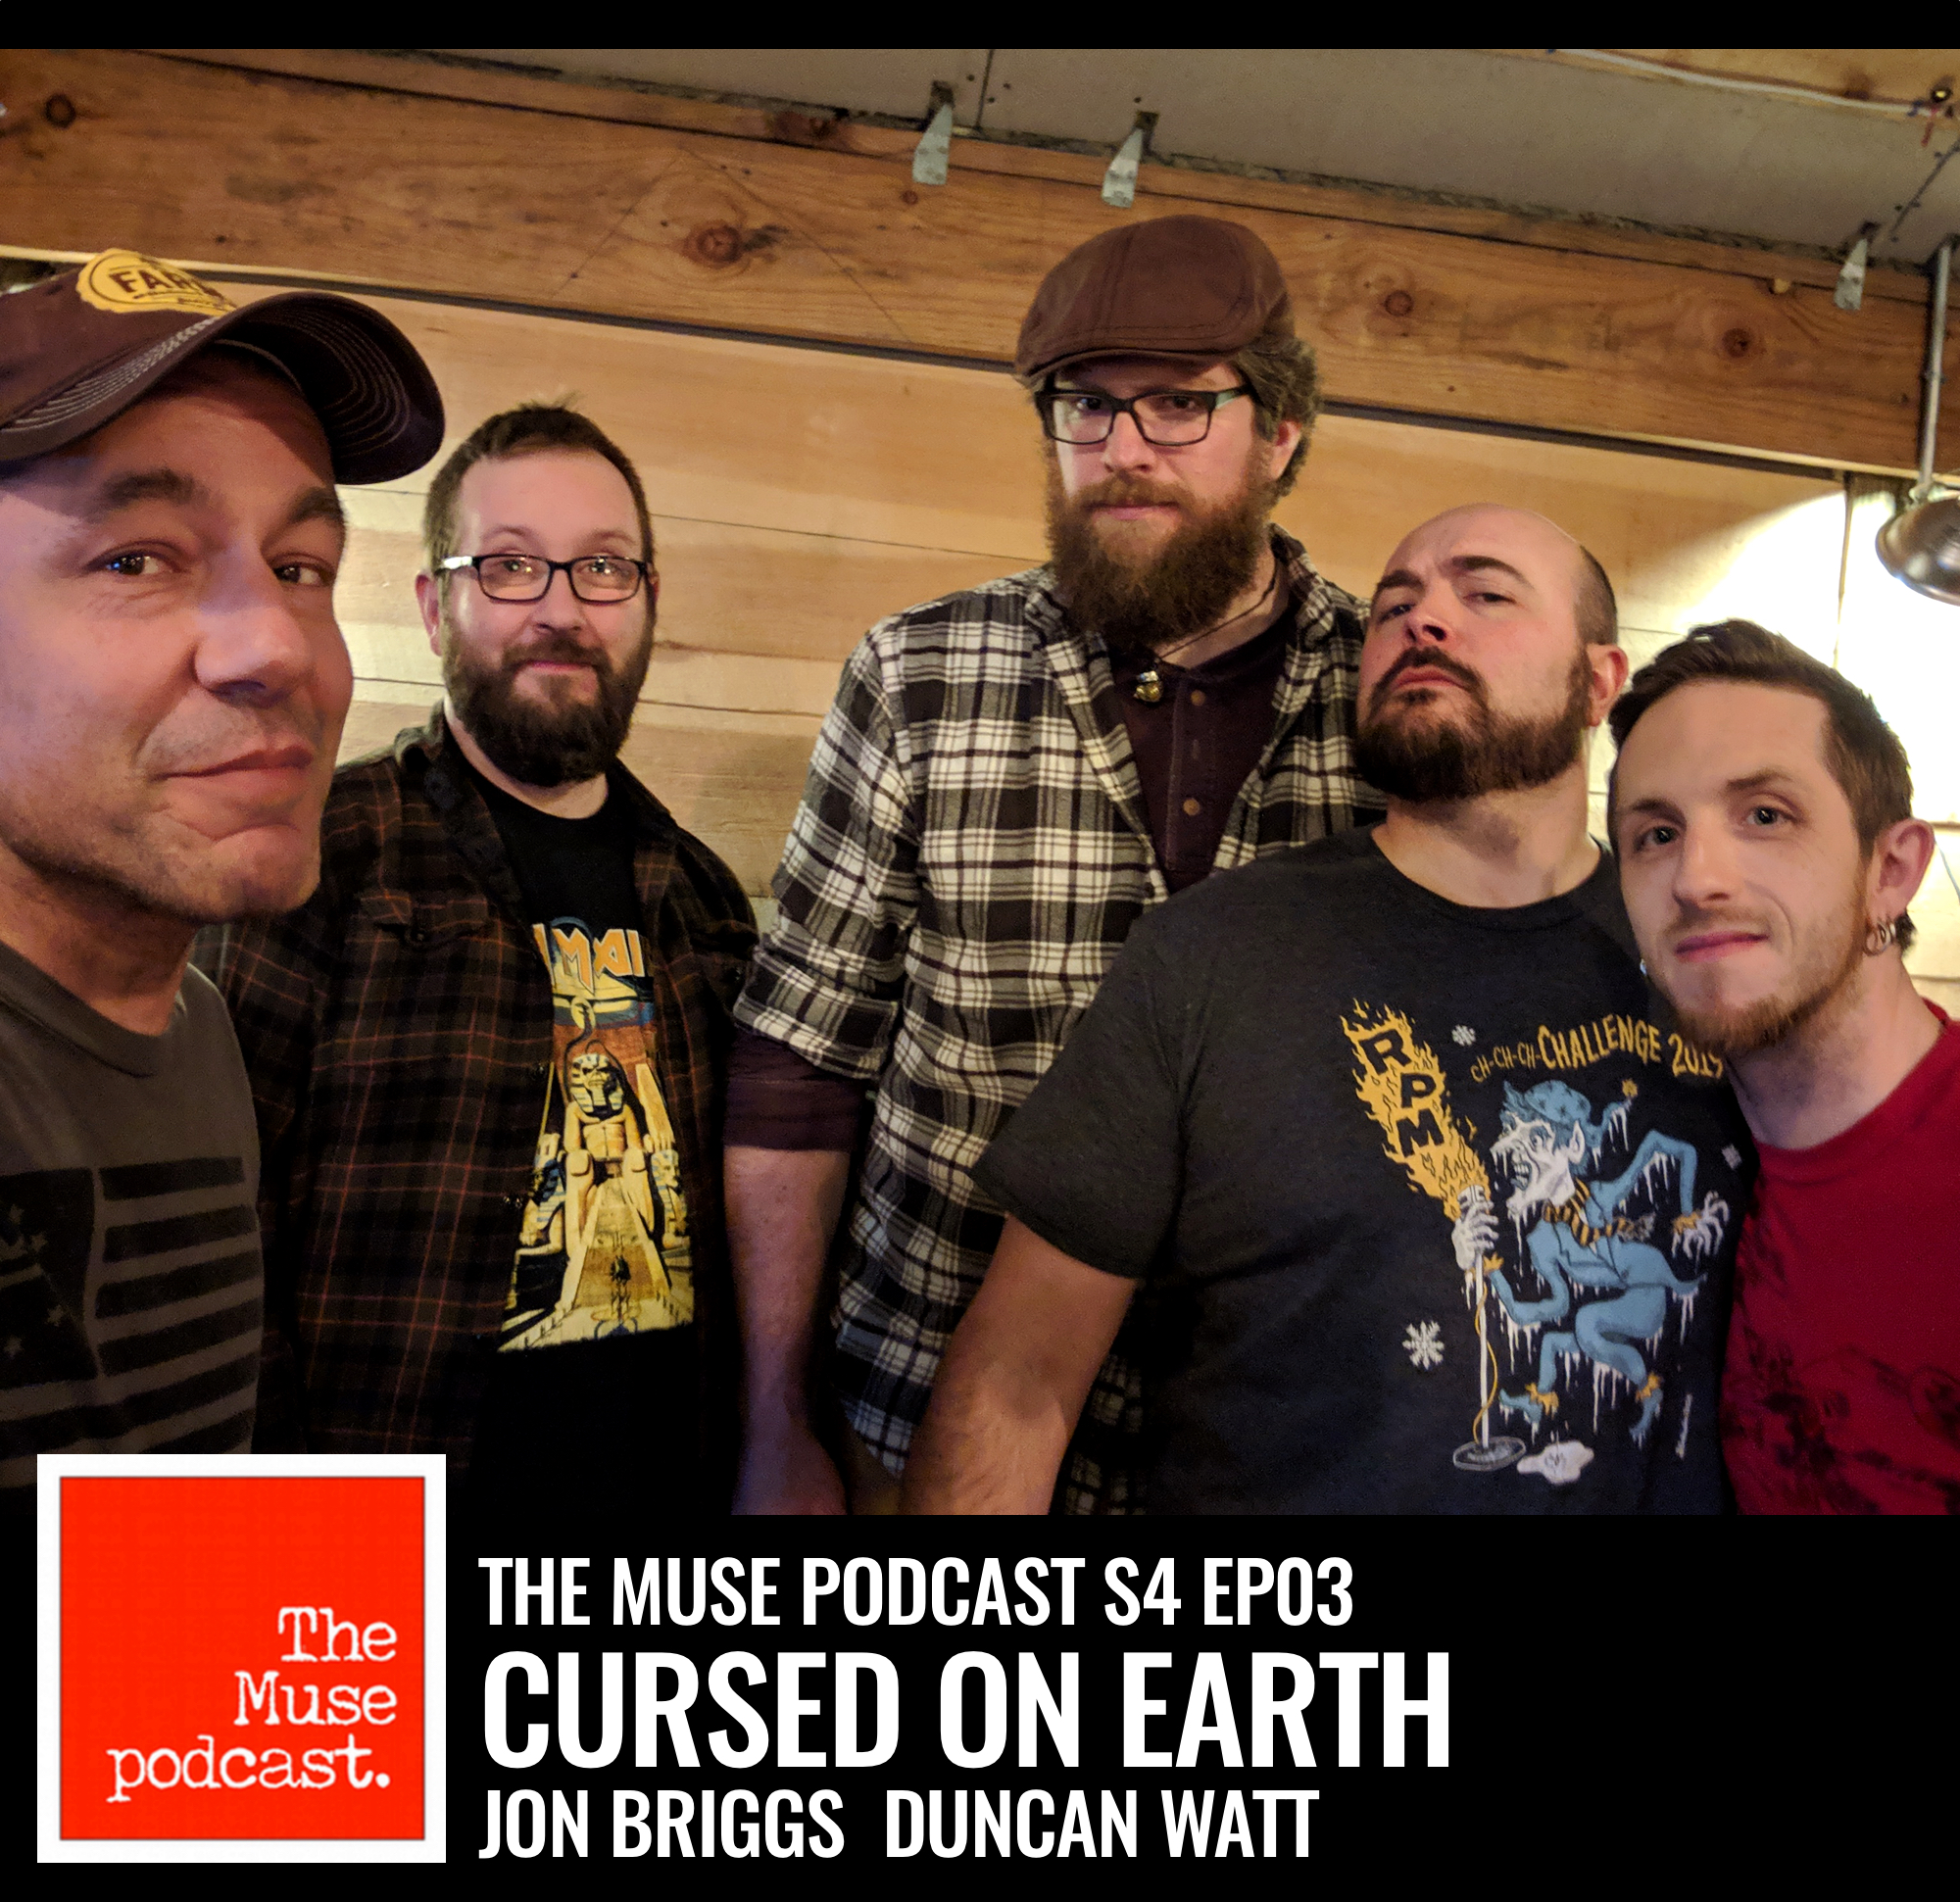 TheMusePodcast_S4Ep03_CursedOnEarth.jpg